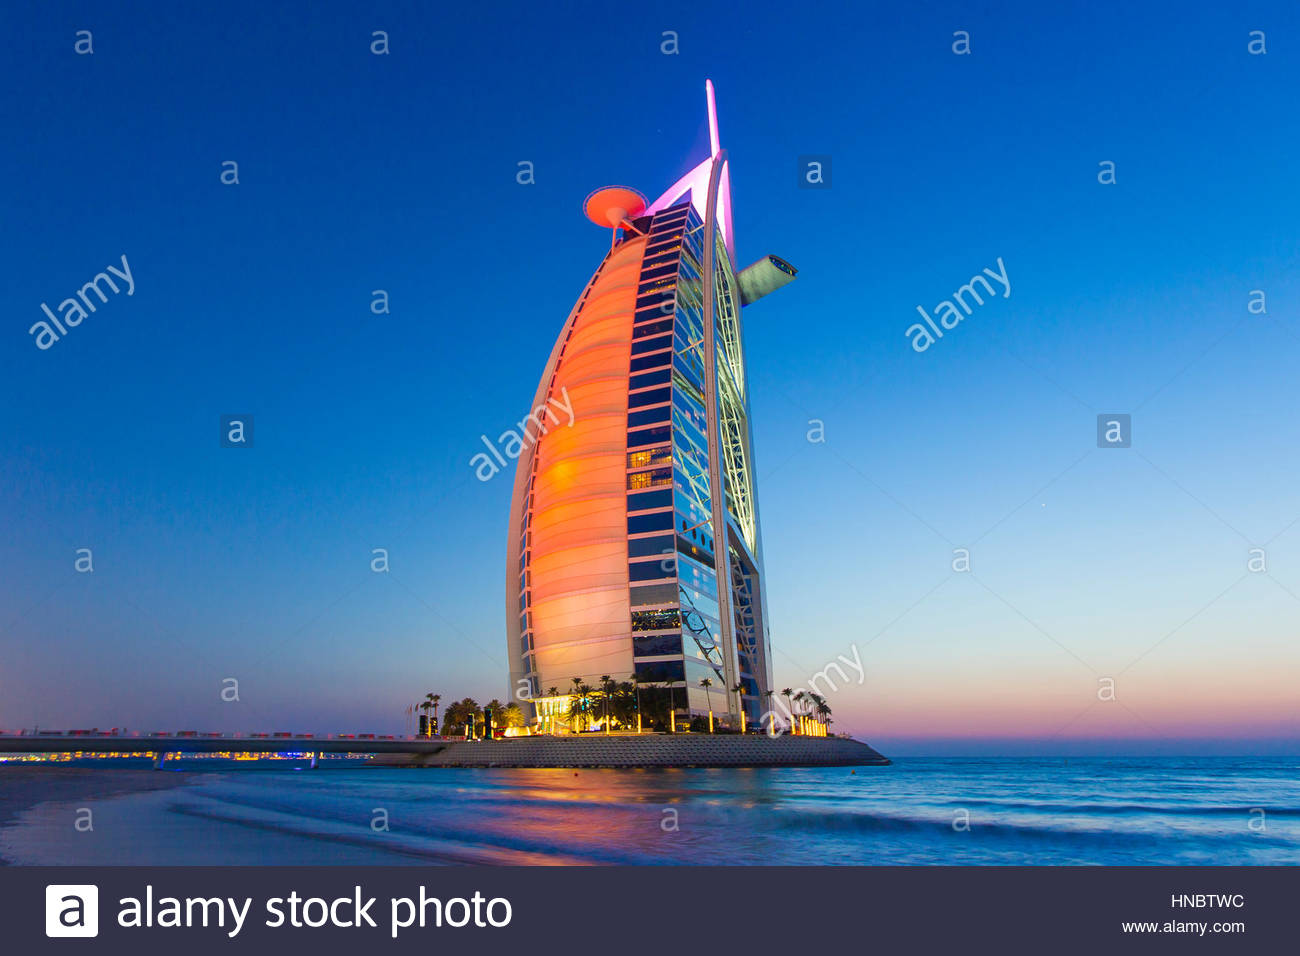 The Burj Al Arab hotel, on the Persian Gulf, ablaze in colorful reflections. - Stock Image